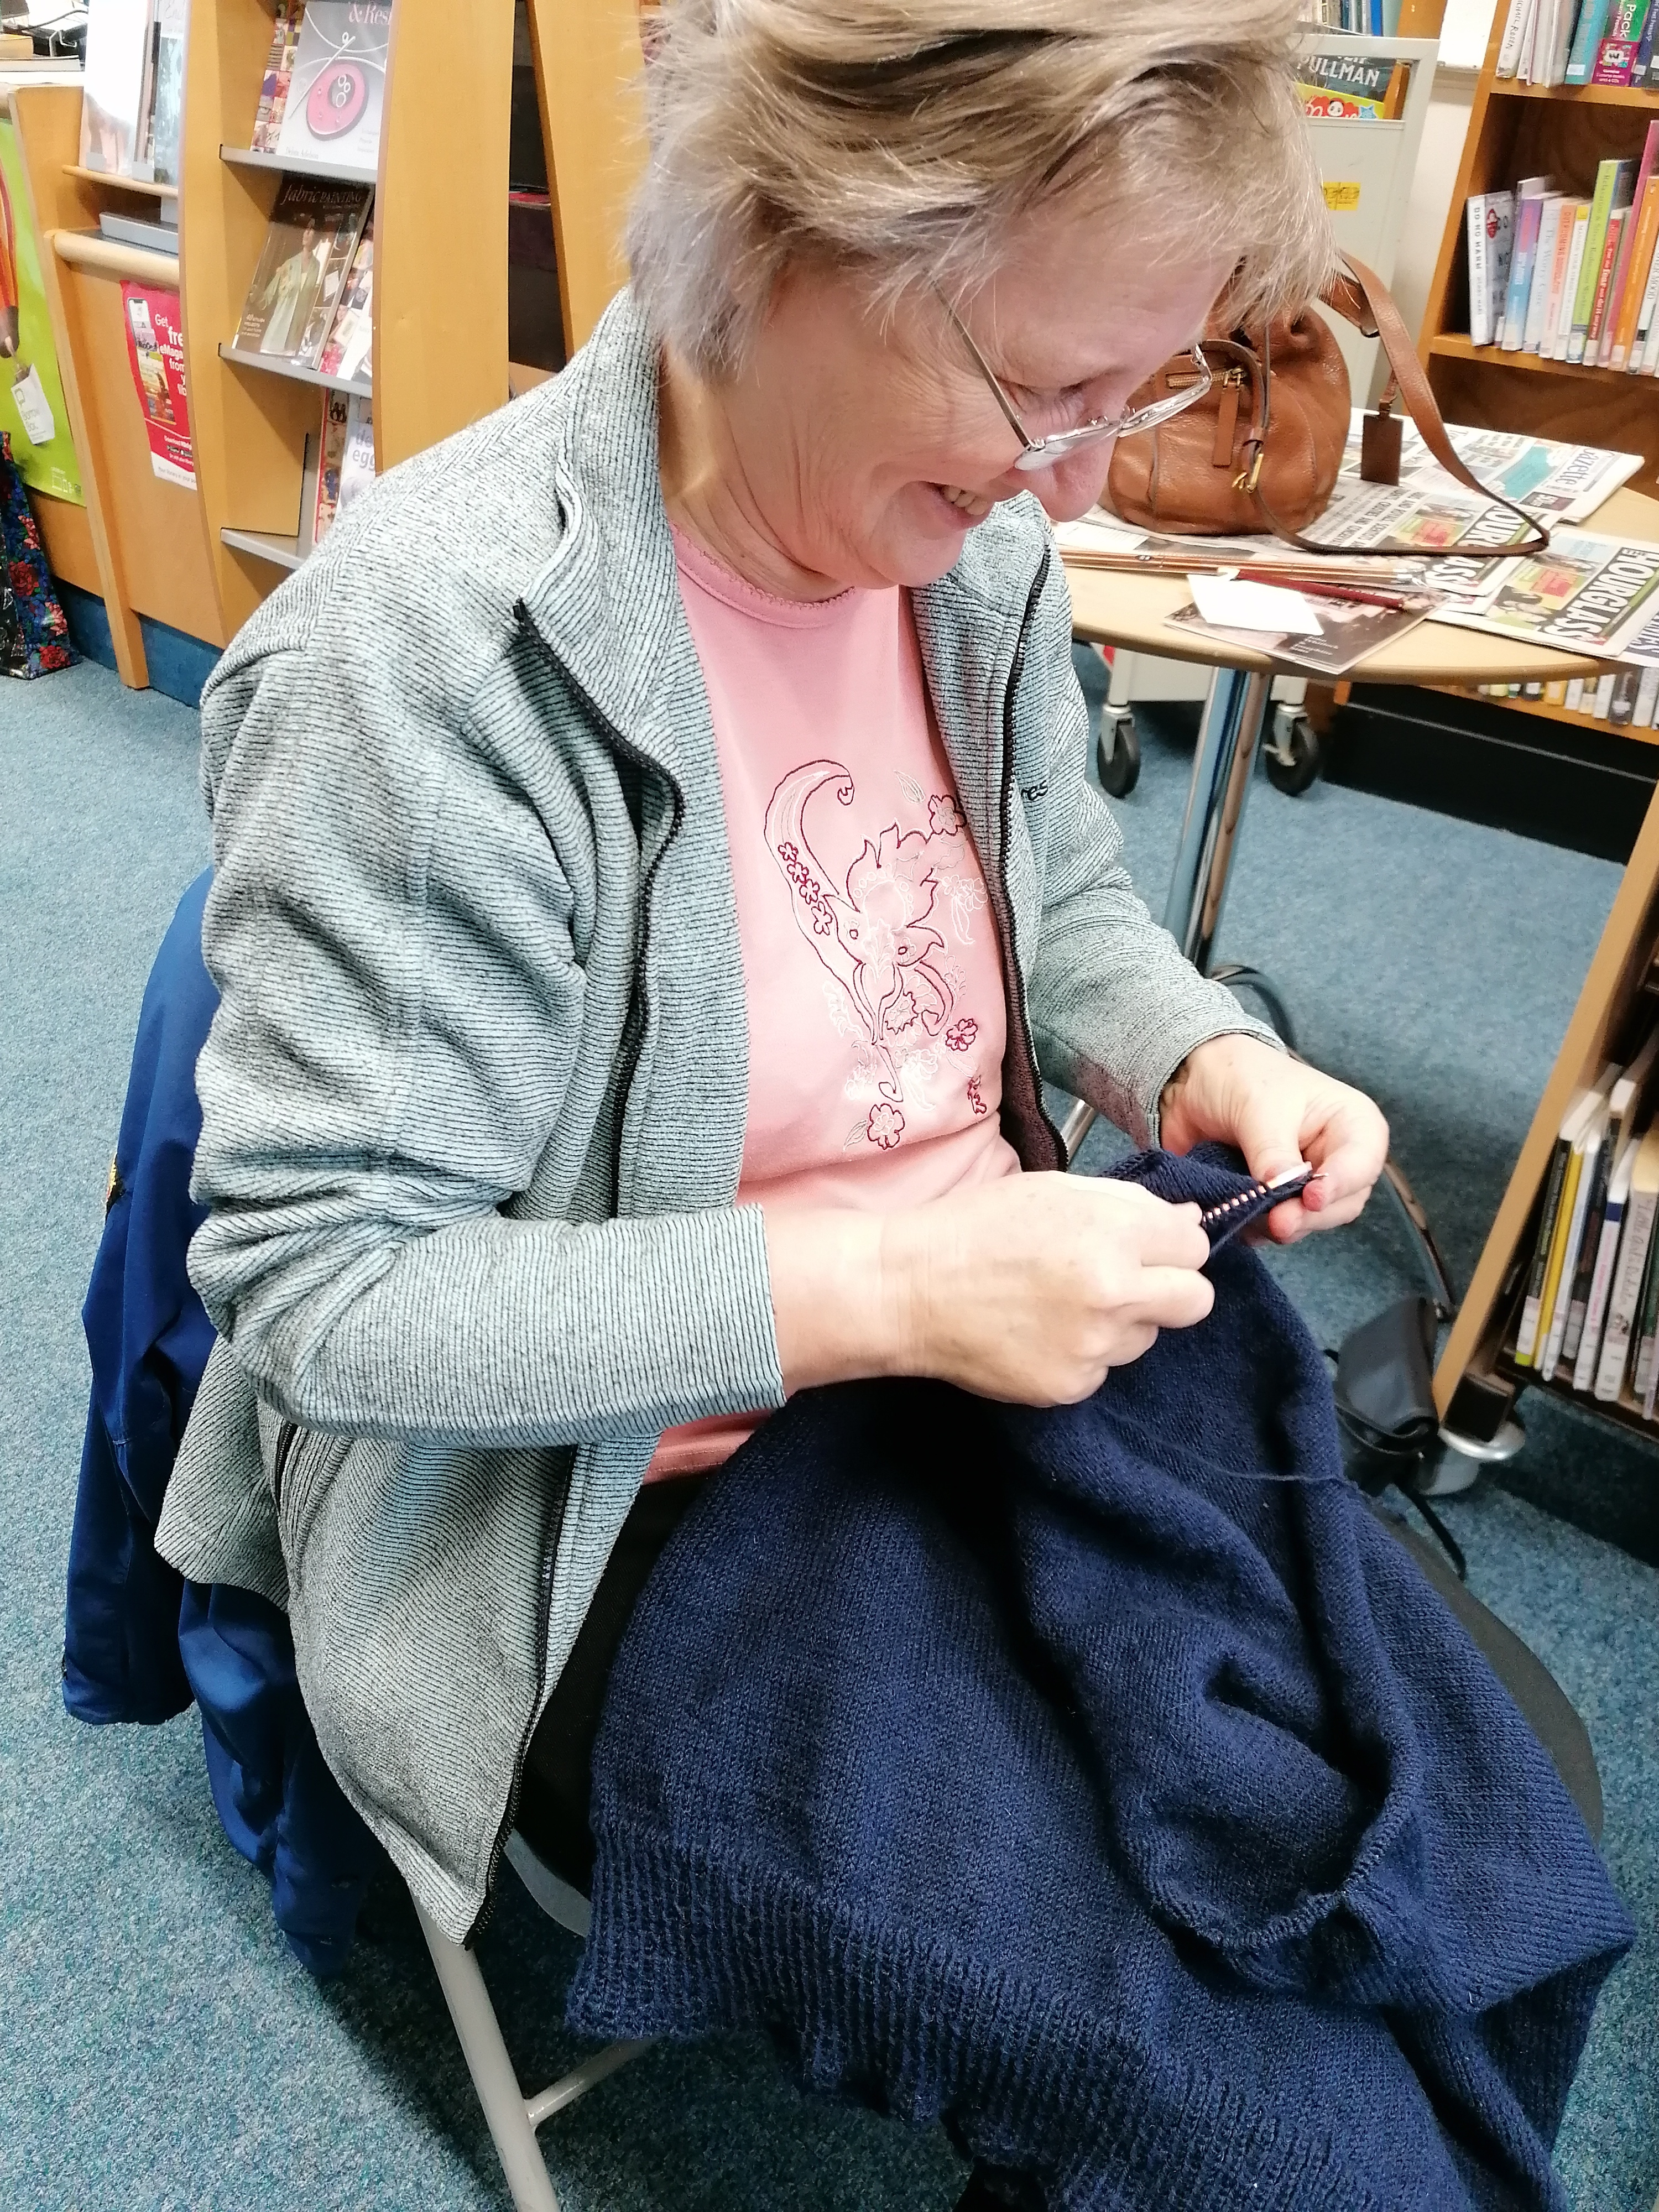 Appledore, knitting, jersey, community group, crafts